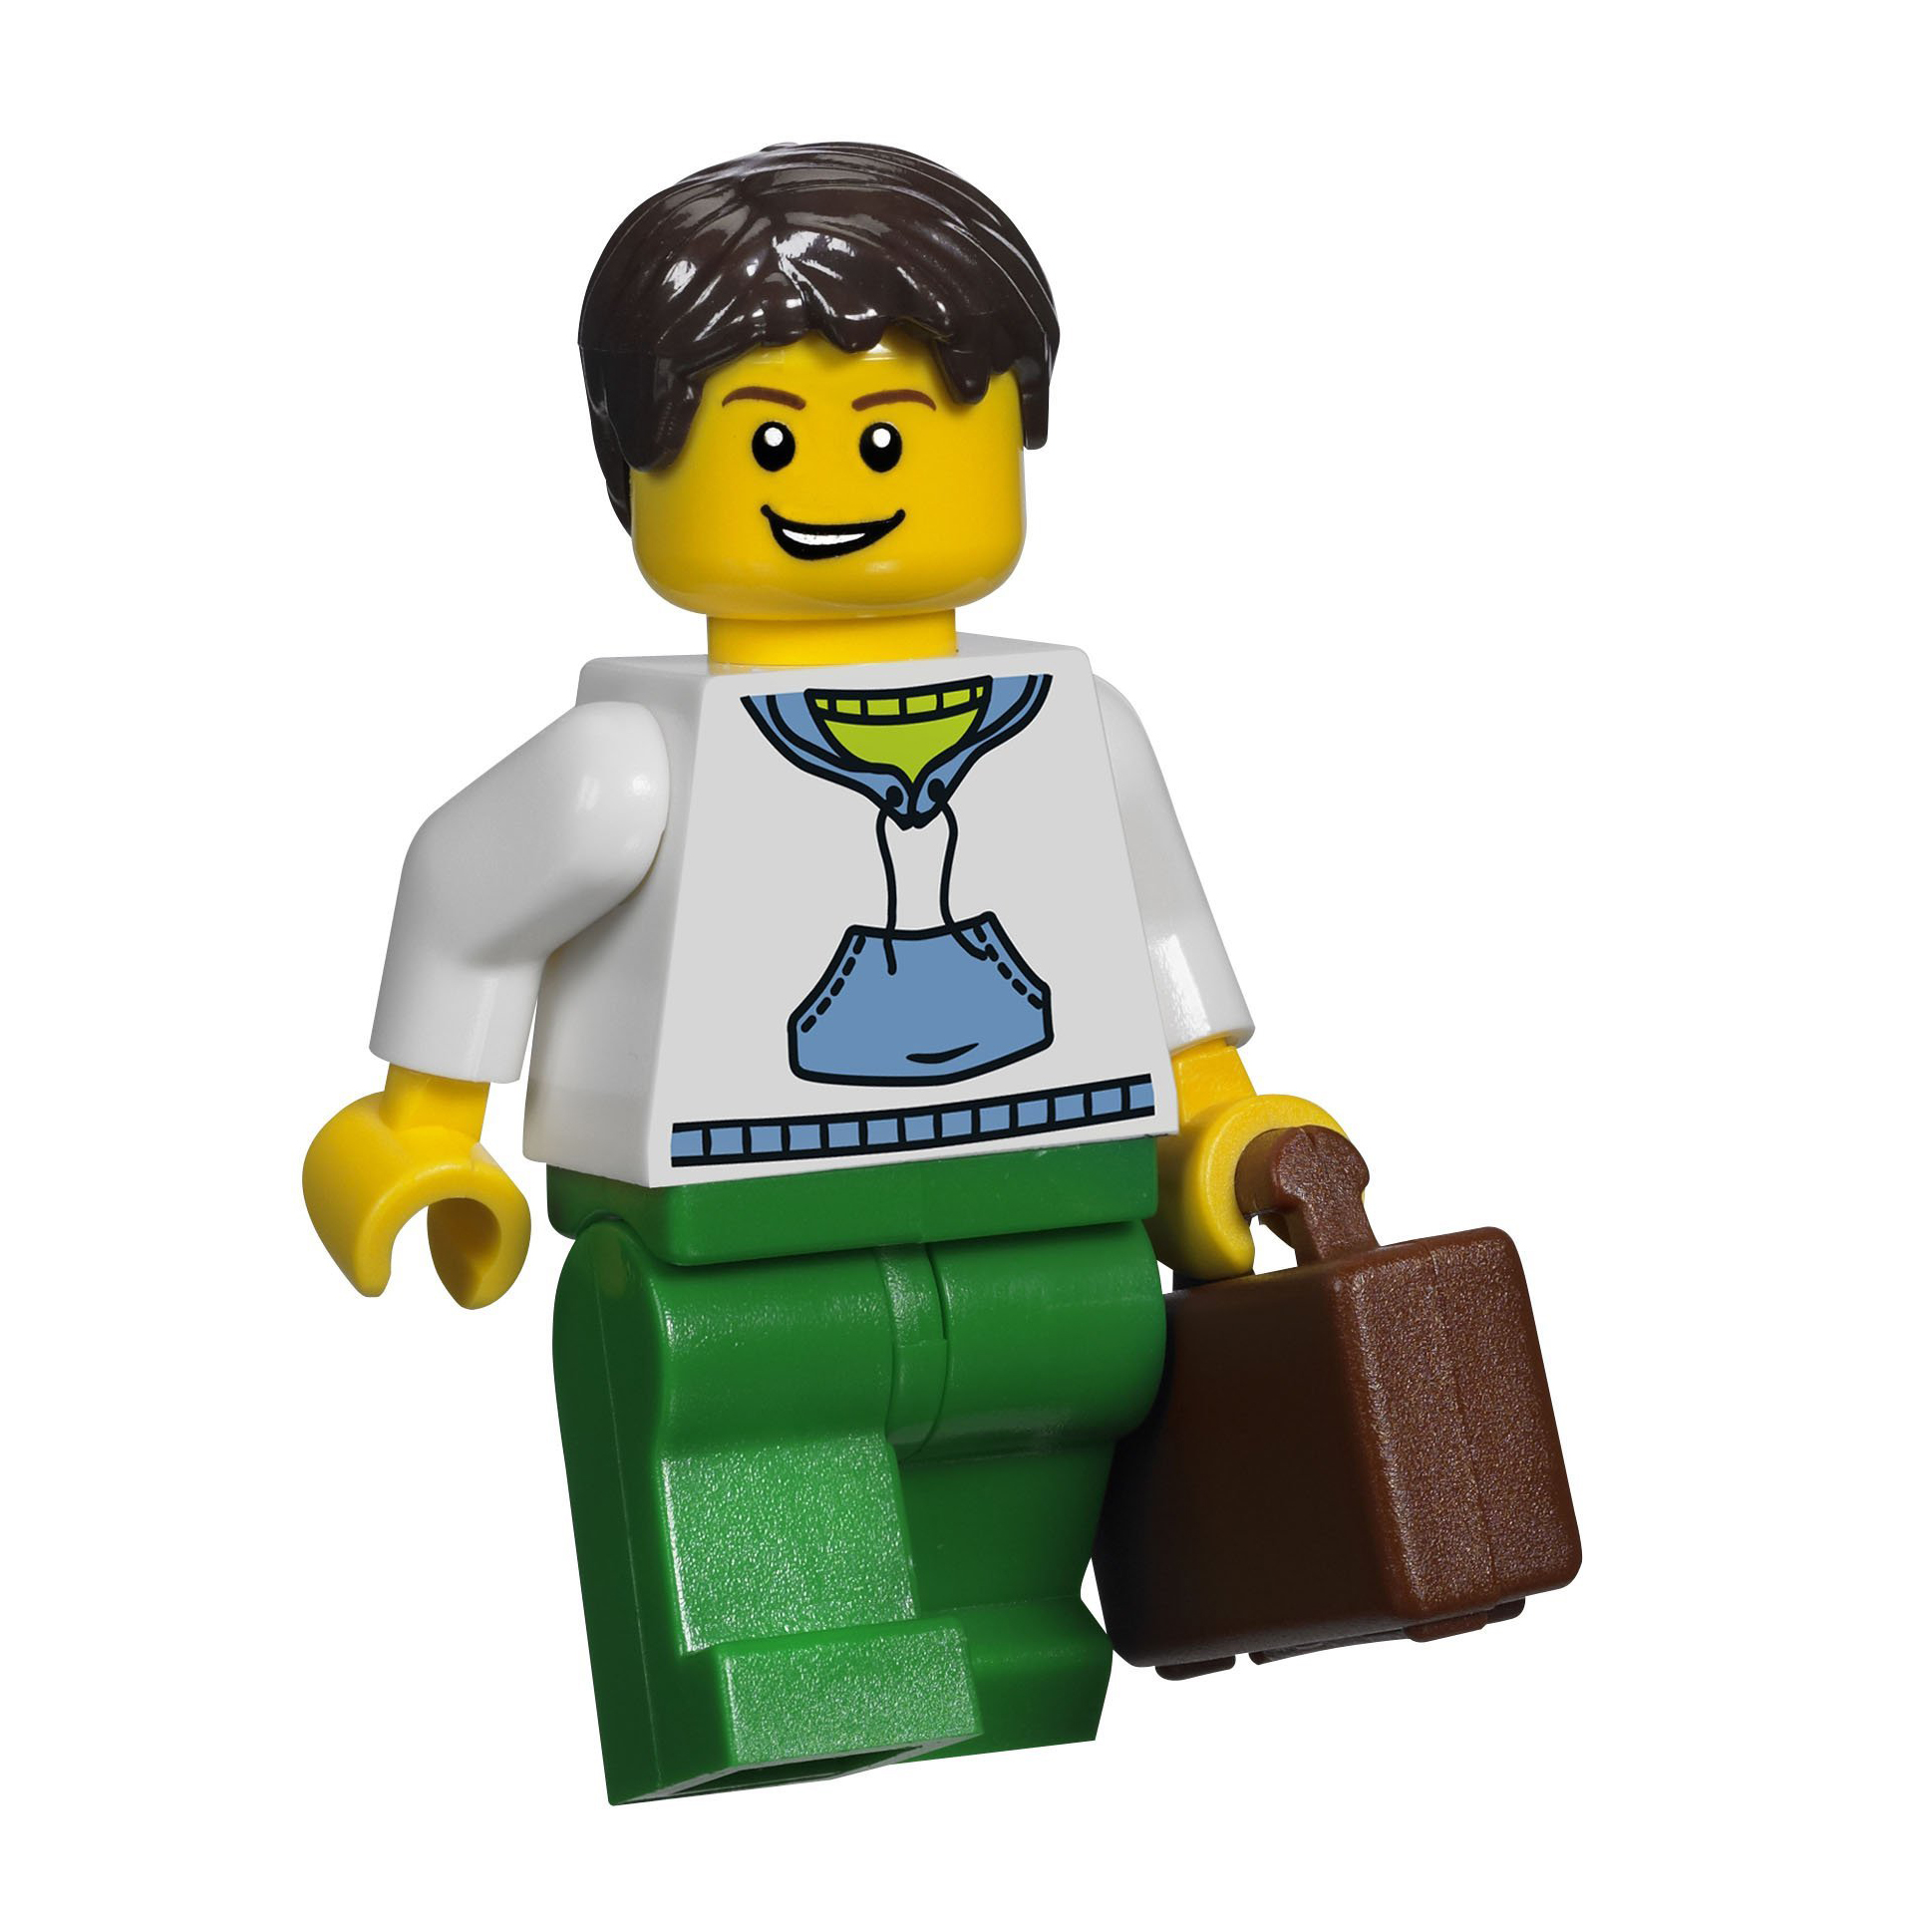 c_3177_minifigure_hr.jpg